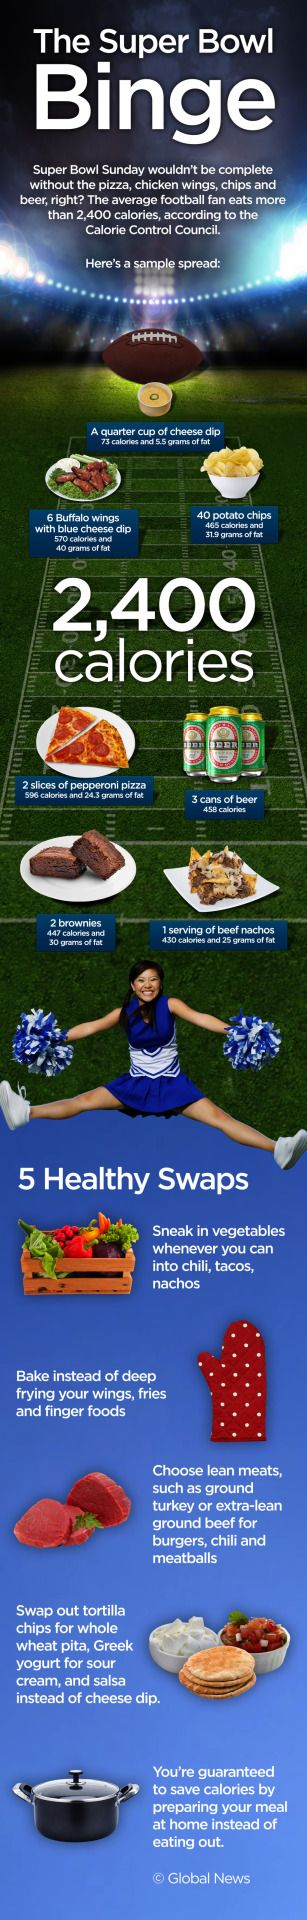 FULL STORY Super Bowl Sunday wouldn't be complete without the pizza, chicken wings, chips and beer, right? If you're eating according to the typical Game Day spread, you could be consuming more than 2,400 calories, according to the Calorie Control...